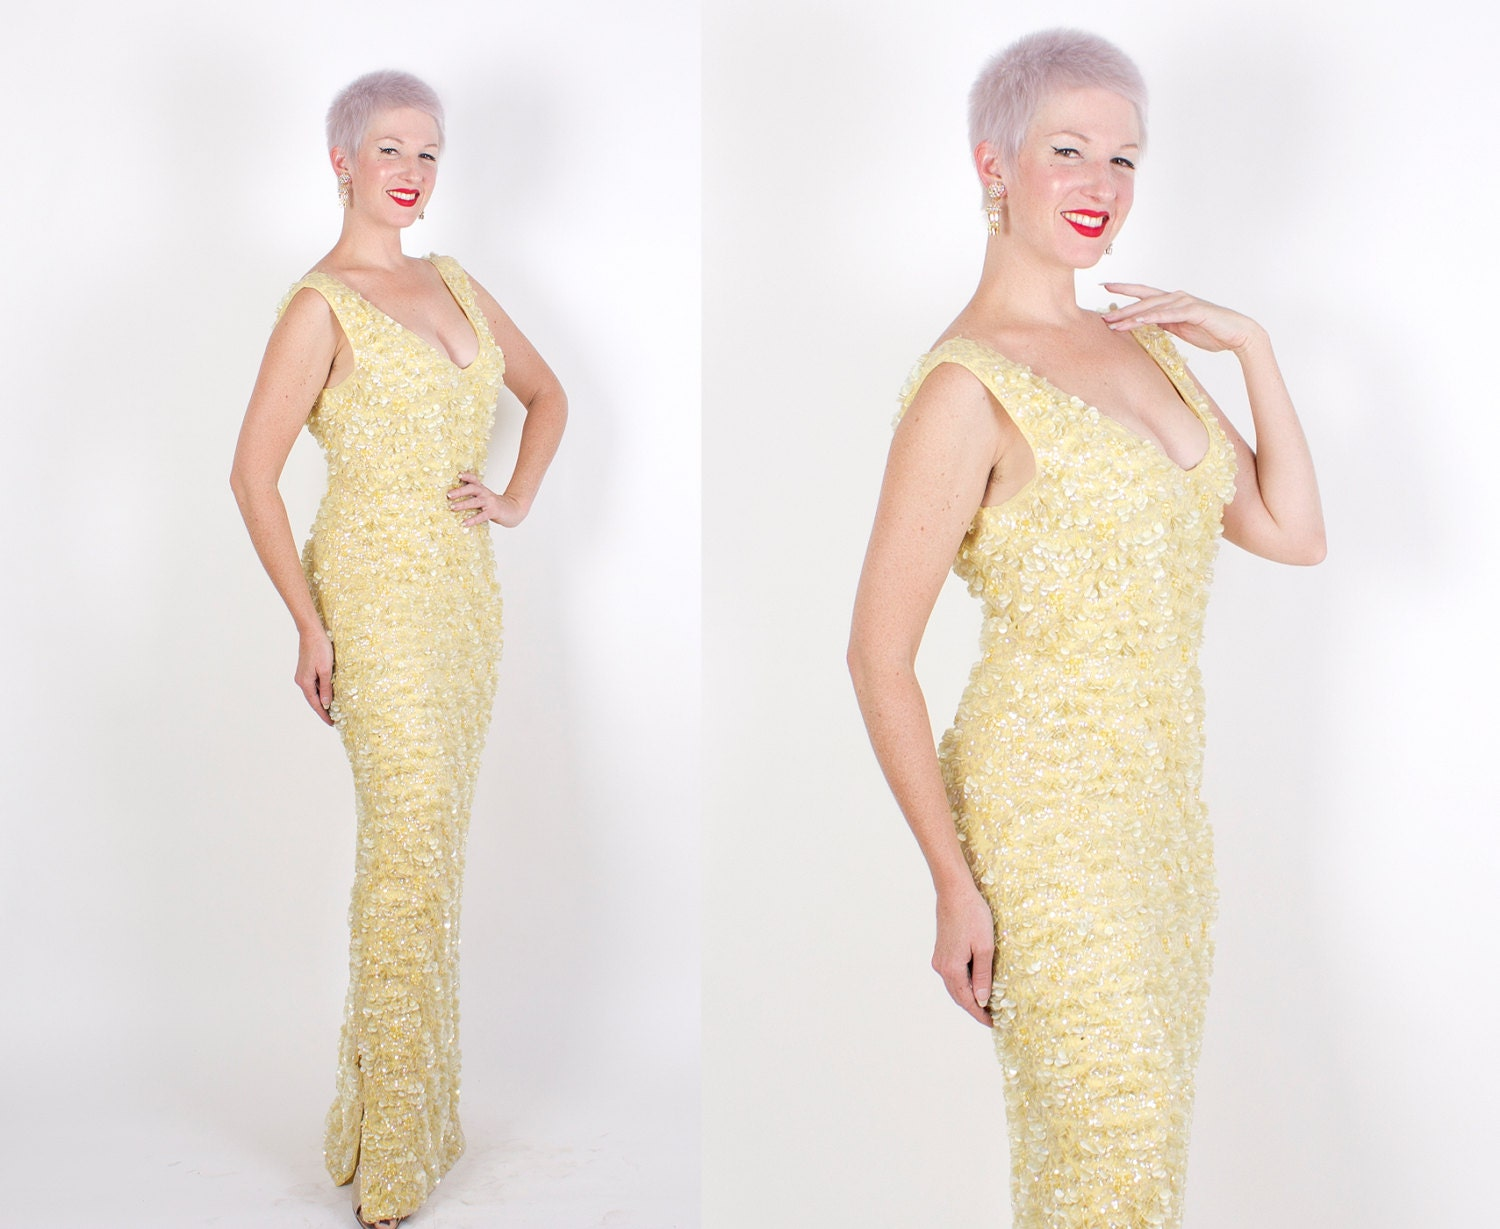 GLAMOROUS 1960s Iridescent Pale Yellow Curve-Hugging Hourglass Hand Knit Fully Sequined & Beaded Floor Length Evening Gown - PlusSize L / XL